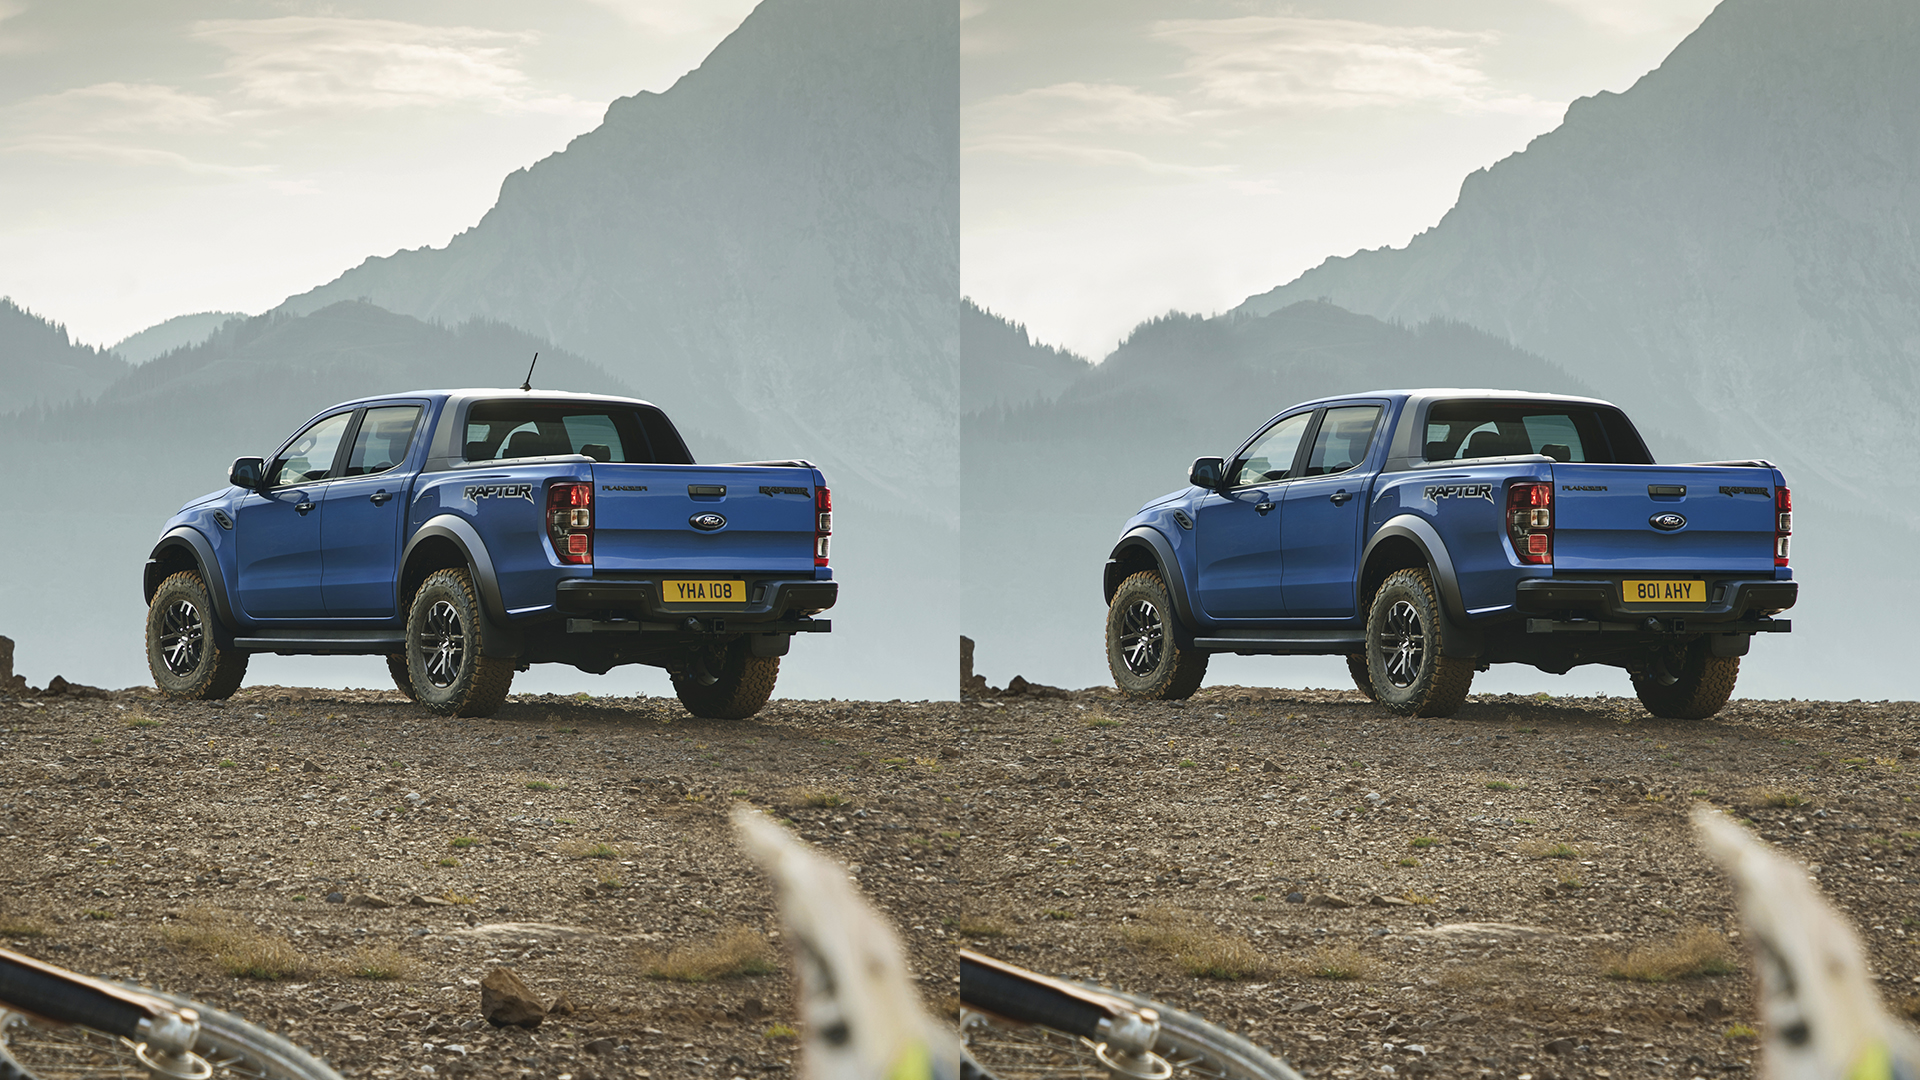 Ford Stay Home Raptor spot the difference game